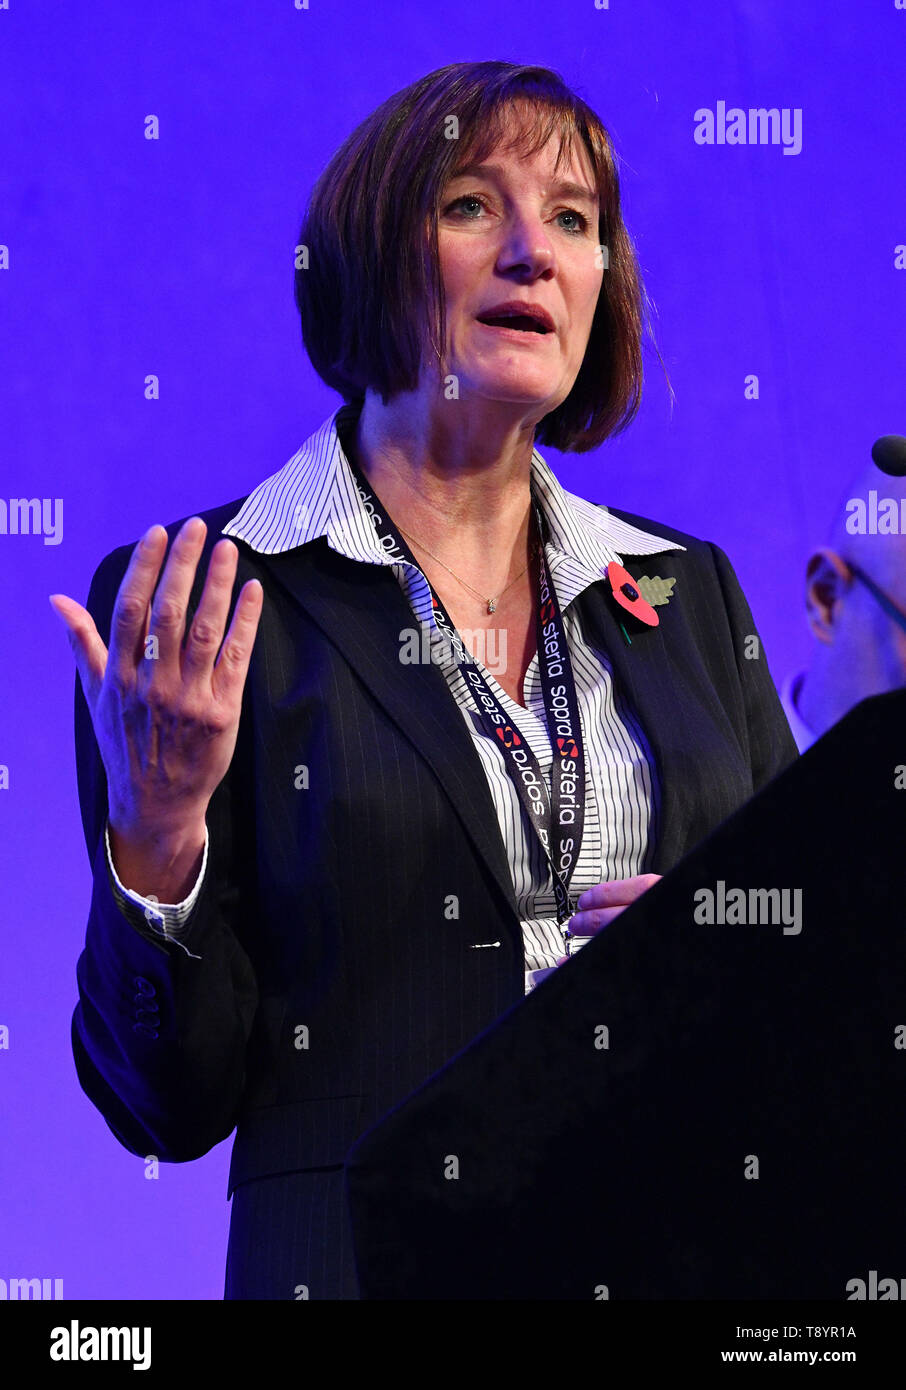 Director General of the National Crime Agency (NCA) Lynne Owens speaking to senior police officers at the APCC ( Association of Police & Crime Commissioners)and NPCC ( National Police Chiefs Council) Partnership Summit 2018 in London. 31 October 2018. - Stock Image